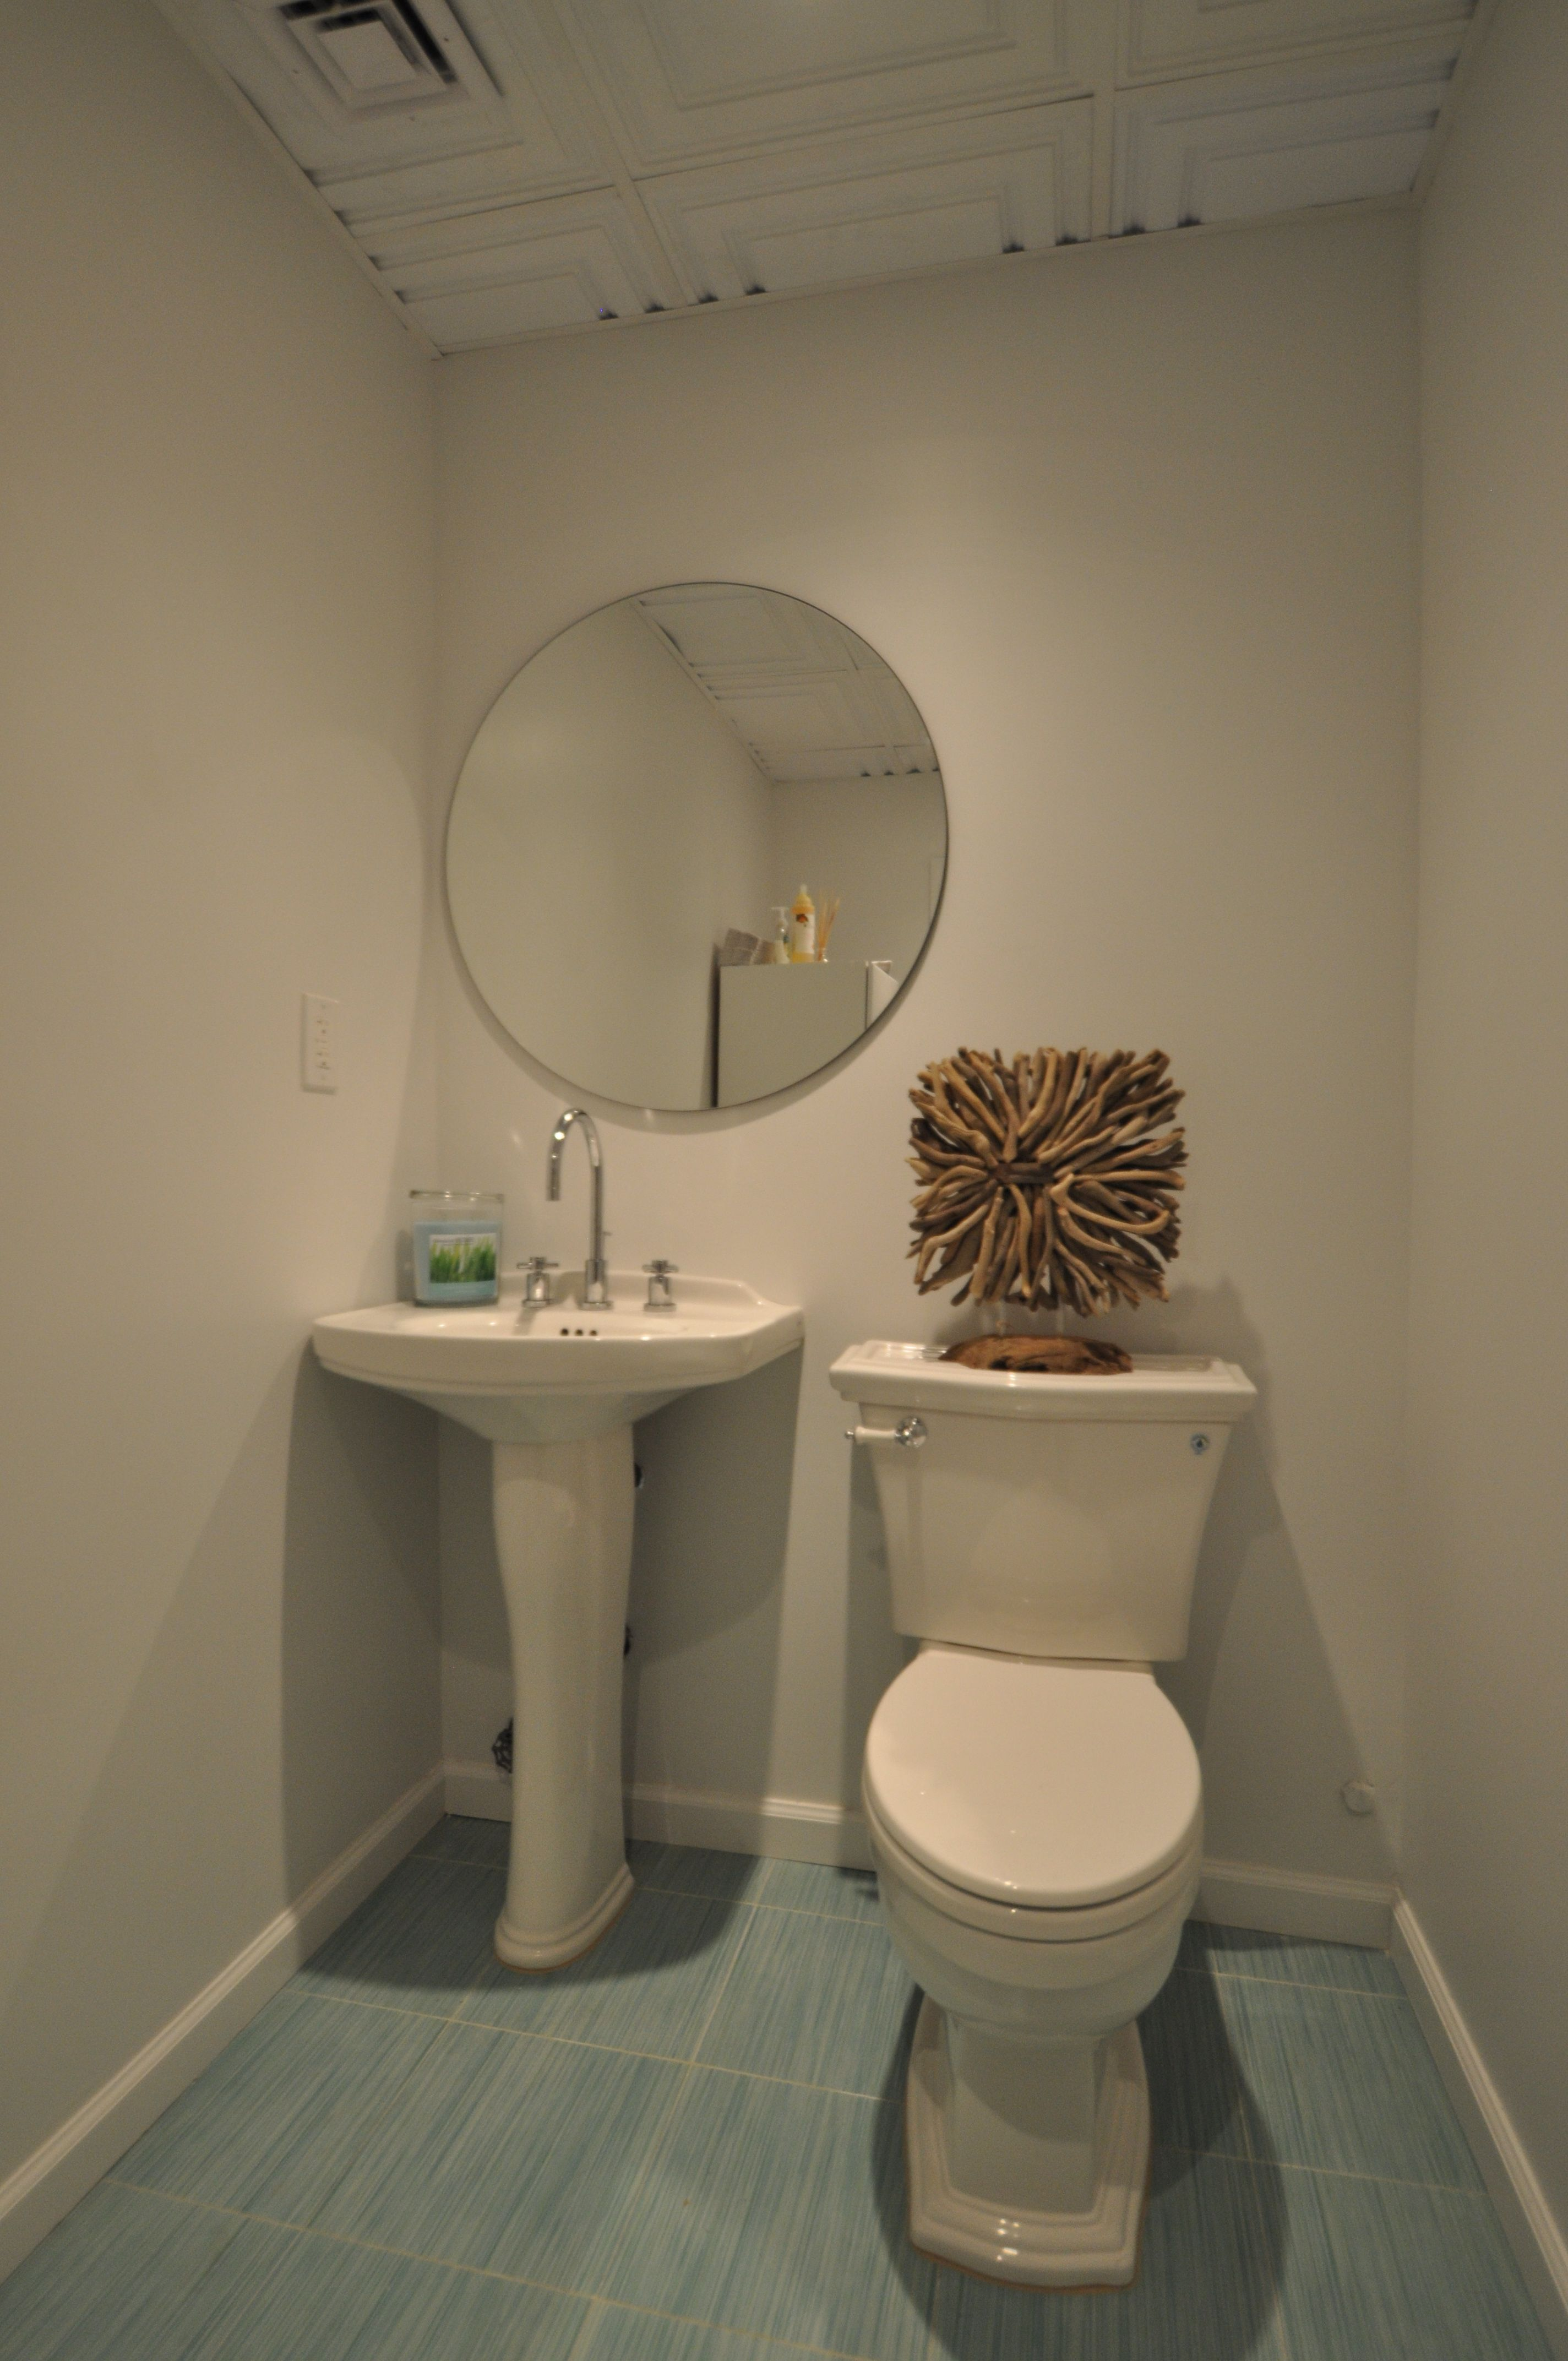 Commercial 1/2 Bath with Toto Fixtures and Pedestal Sink